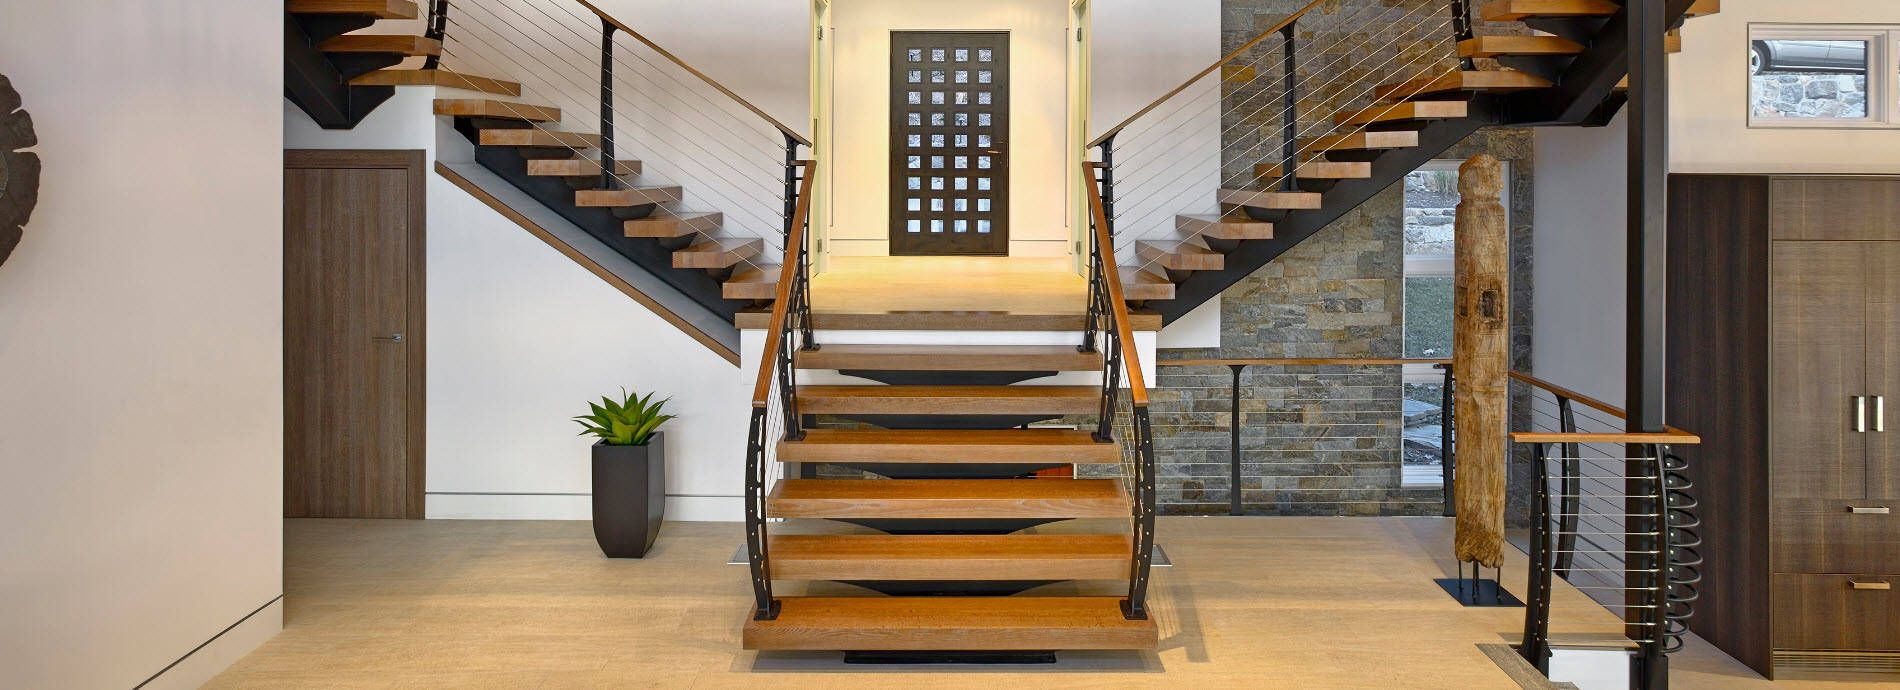 Candlewood Lake Connecticut | Staircase design, Stairs ...